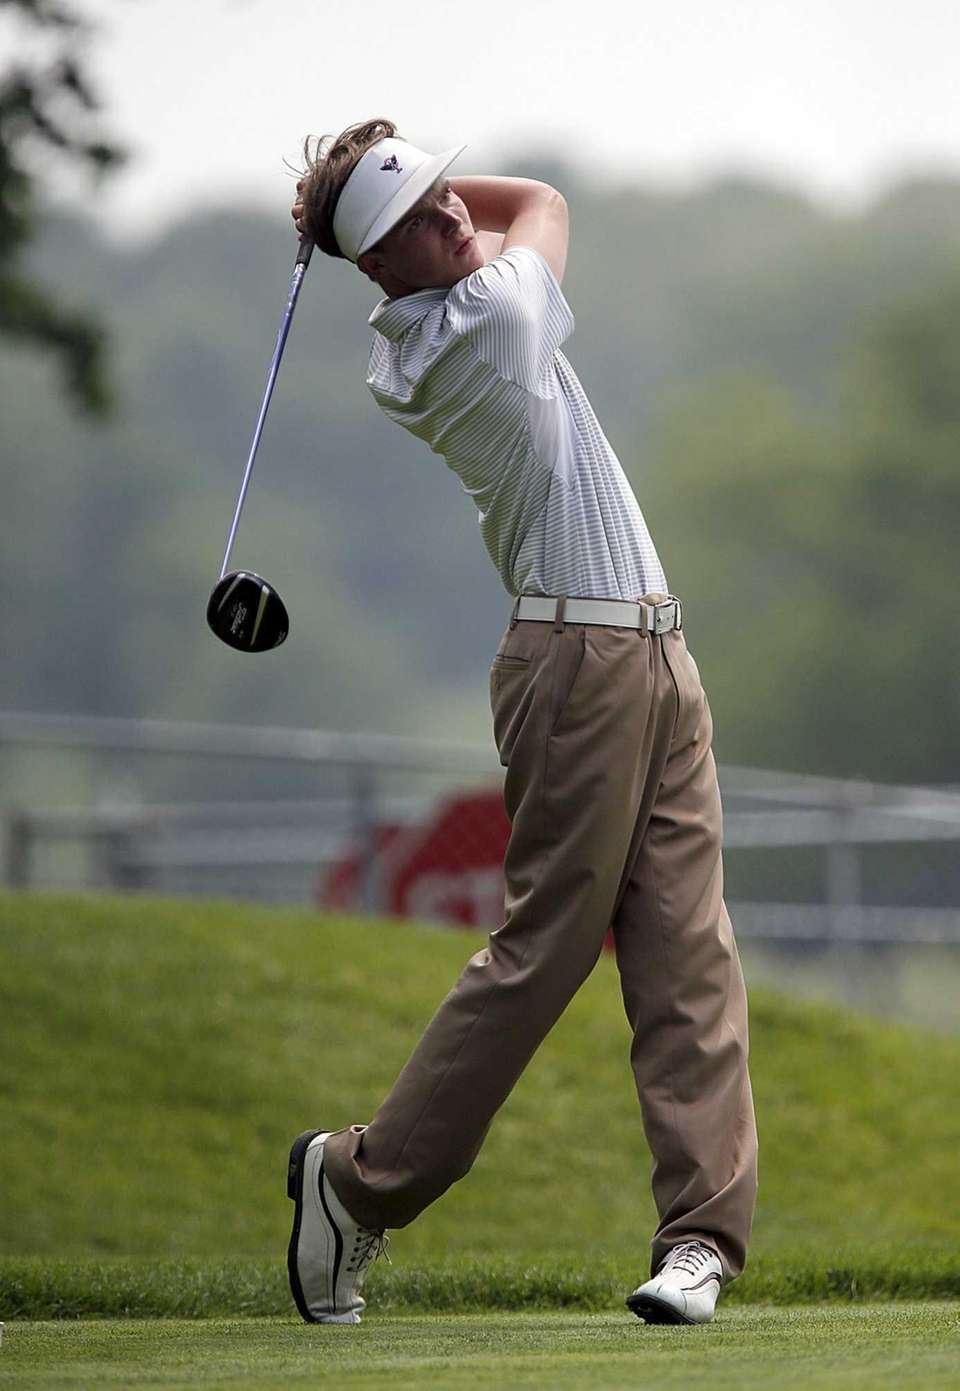 Farmingdale's Kyle Brey tees off on the fifteenth